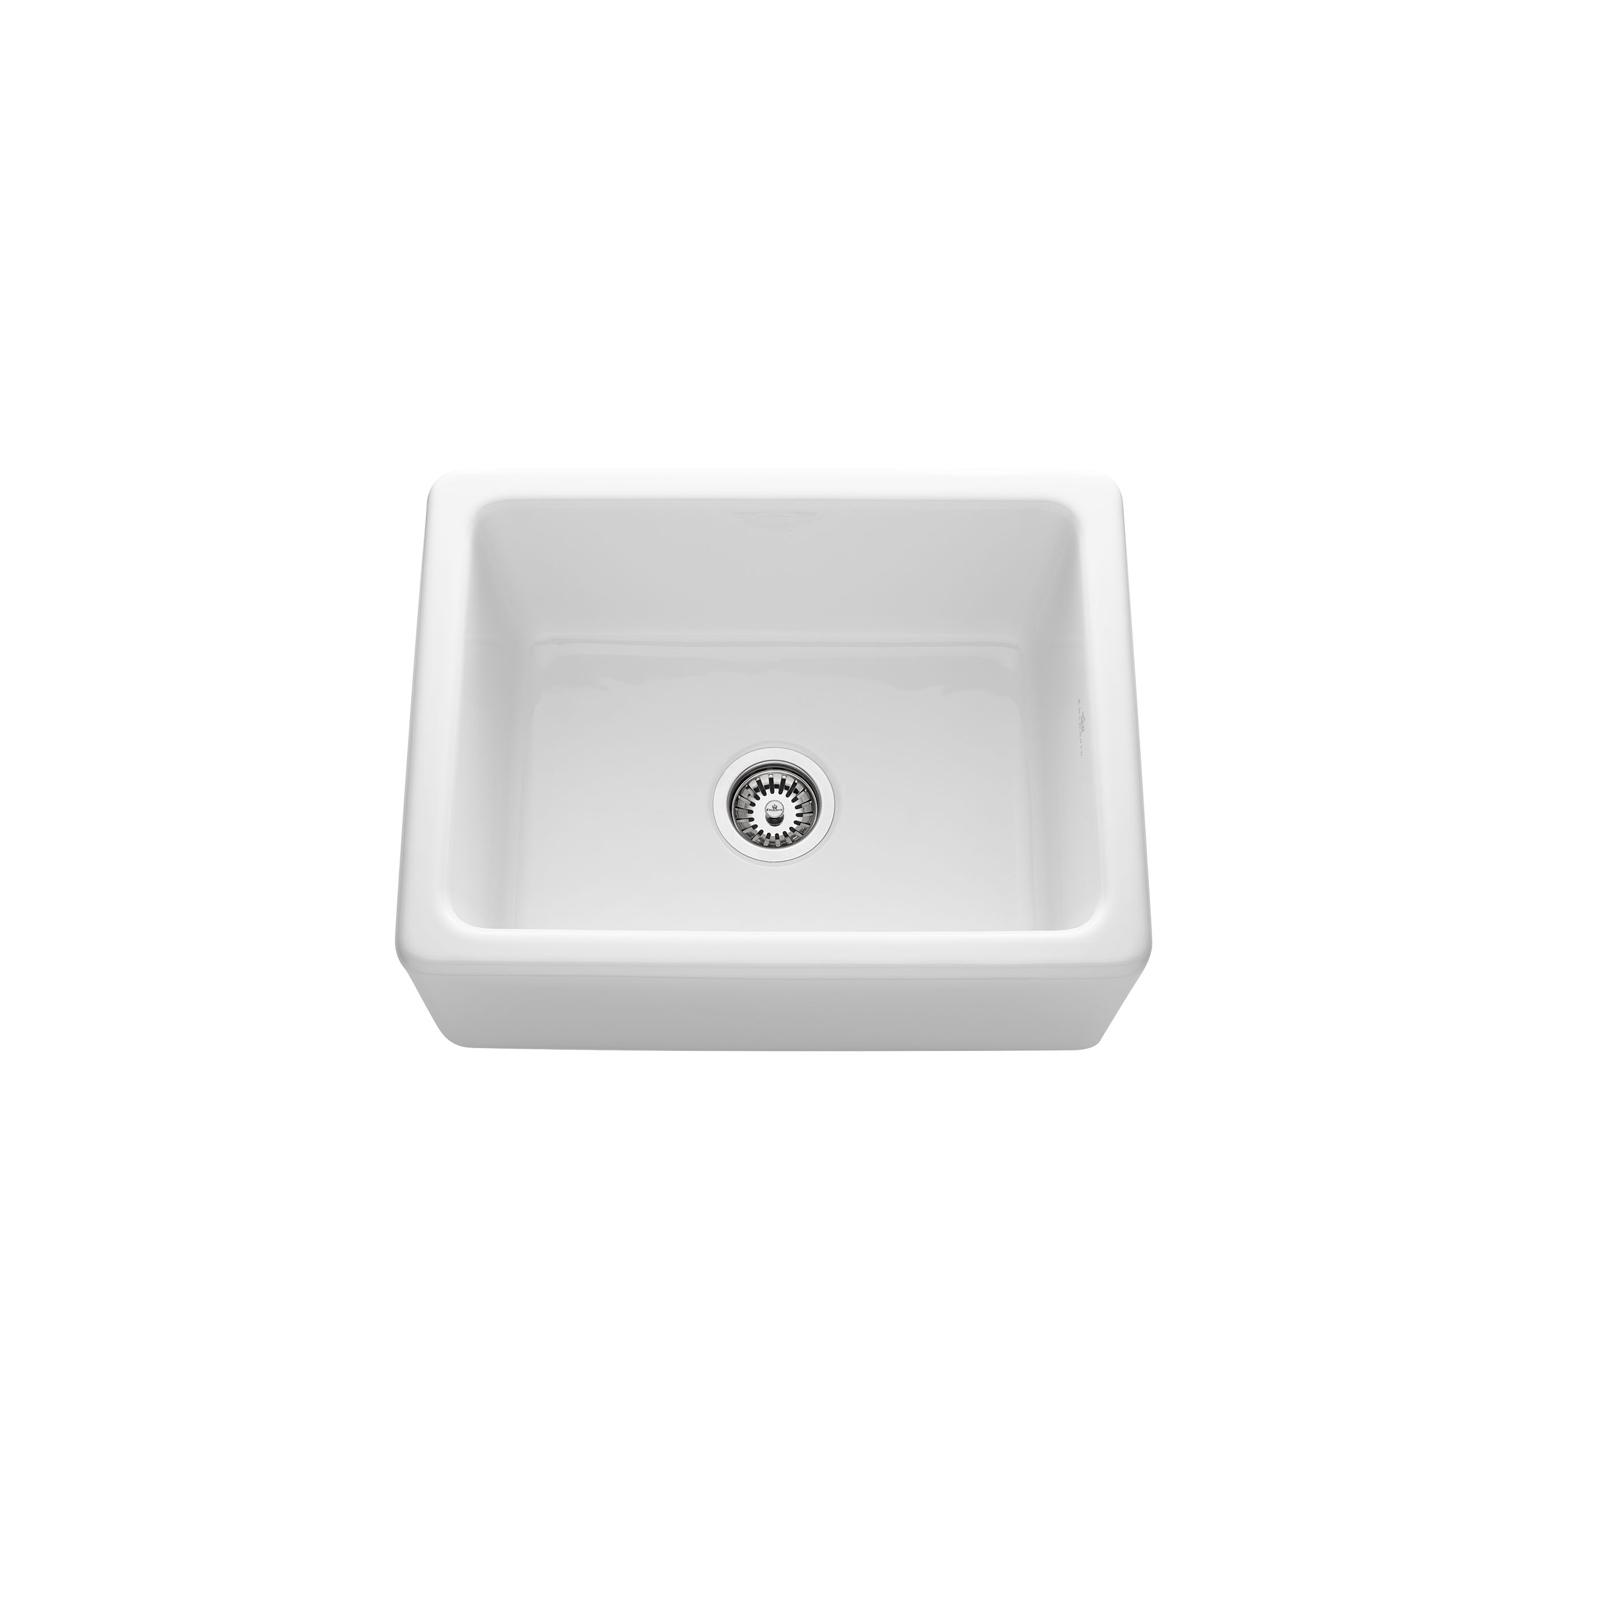 High-quality sink Philippe I - single bowl, ceramic